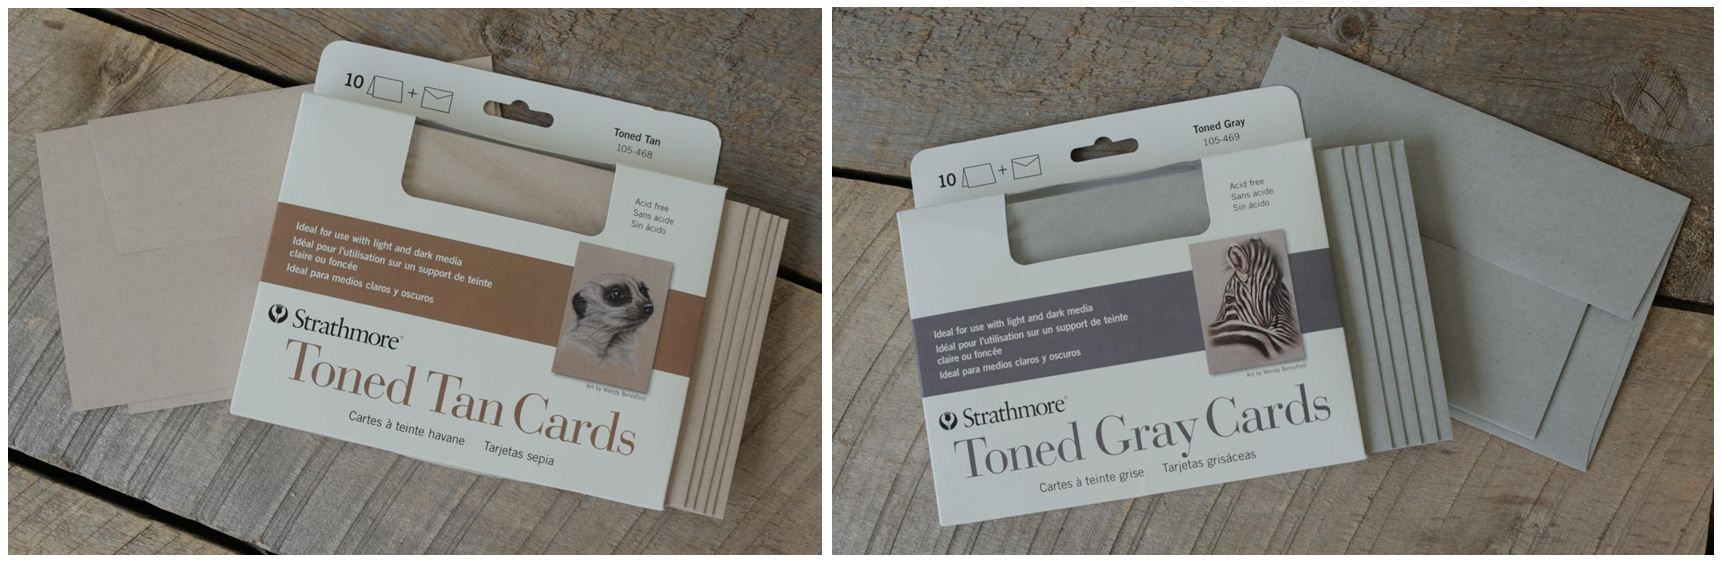 New strathmore greeting cards in toned tan and toned gray new strathmore greeting cards in toned tan and toned gray kristyandbryce Choice Image